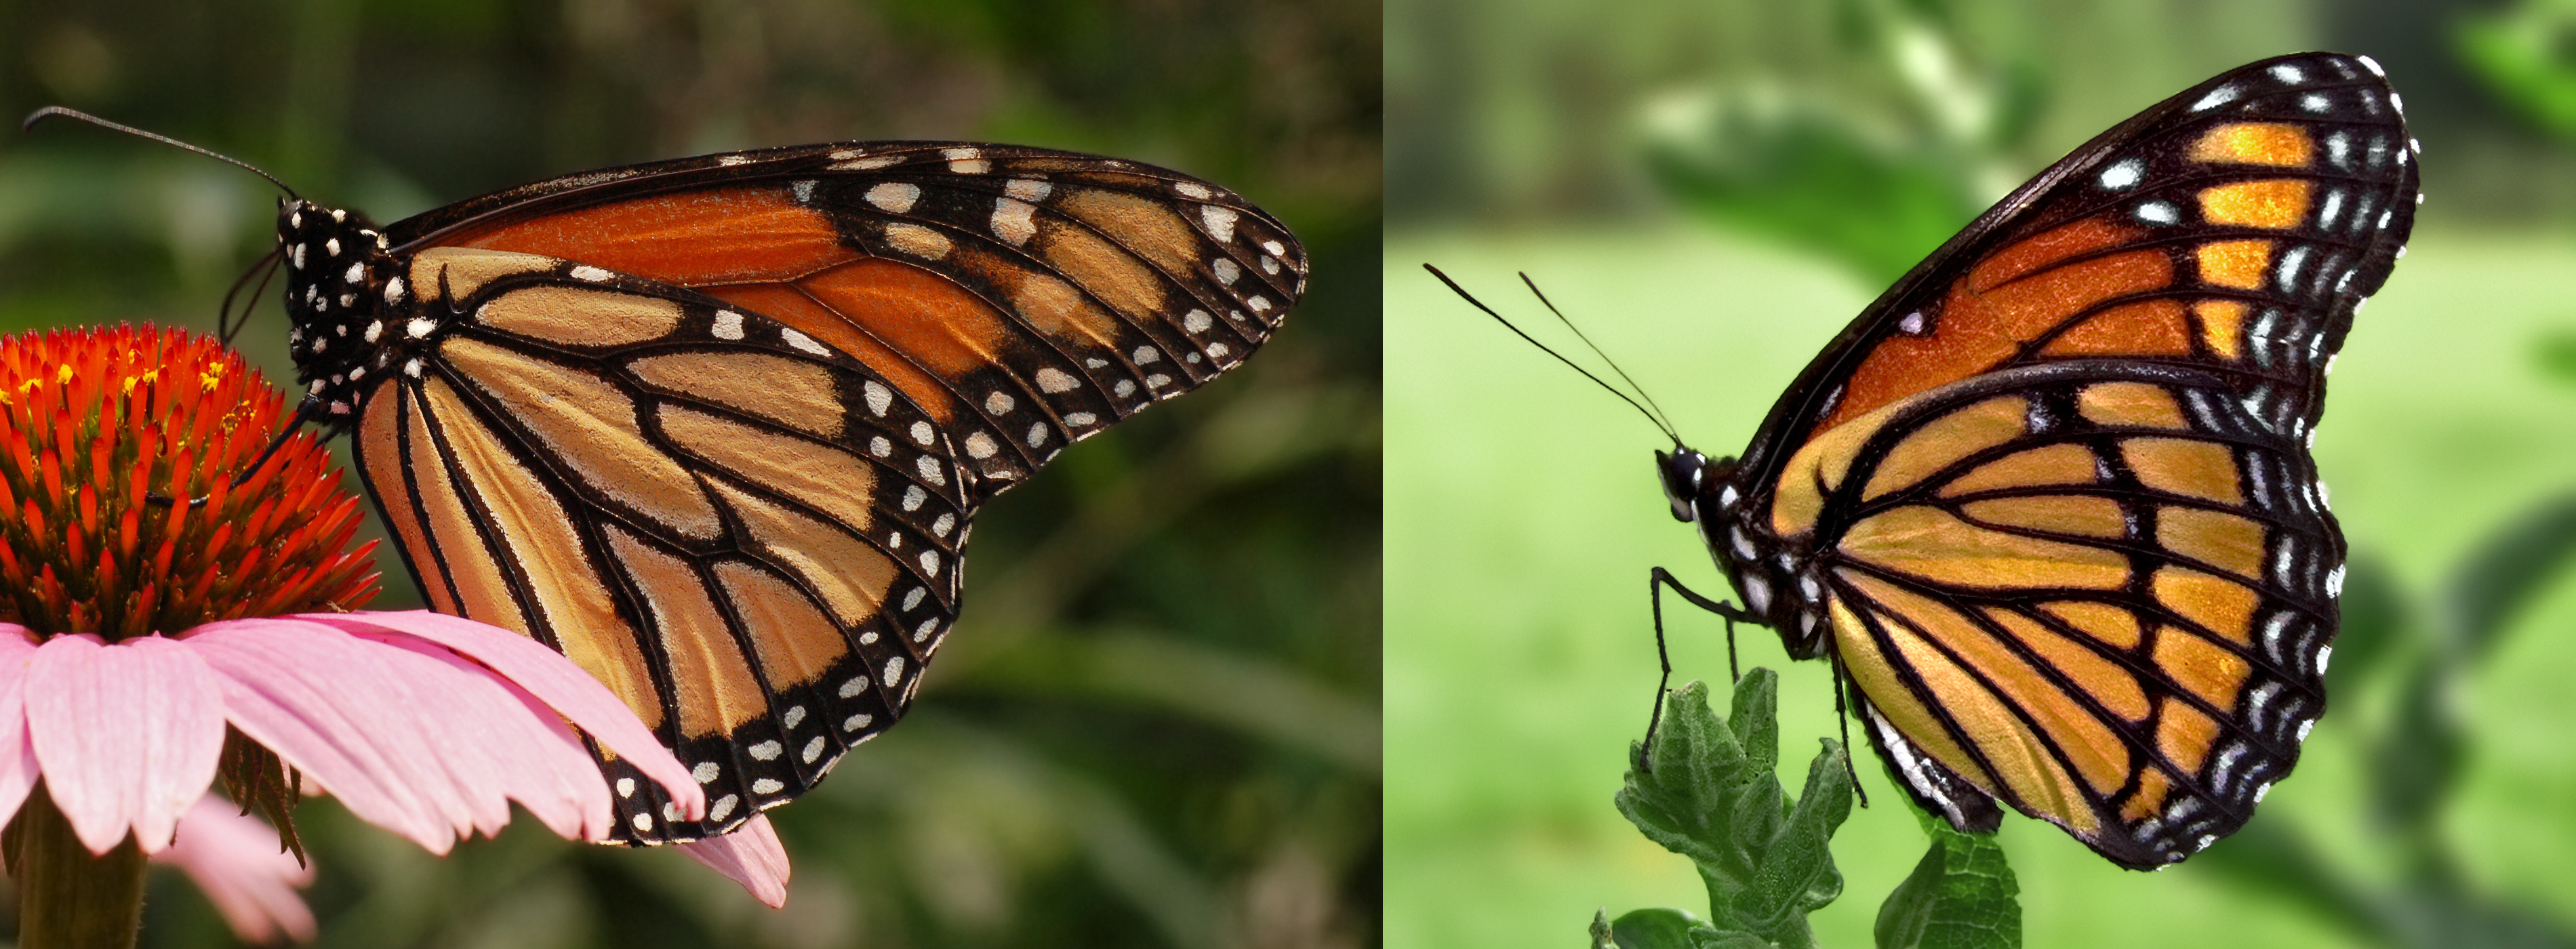 Spiritualism-The Colors of Life: What is Color? Color may serve as a warning sign and it involves the use of bold markings. Mimicry involves deceptive coloration in which the animal deceptively uses the warning coloration of another animal.Monarch butterfly/The Viceroy butterfly: The North American Monarch is poisonous and is distasteful and is protected by its Warning Coloration which the Viceroy uses for its Mimicry.